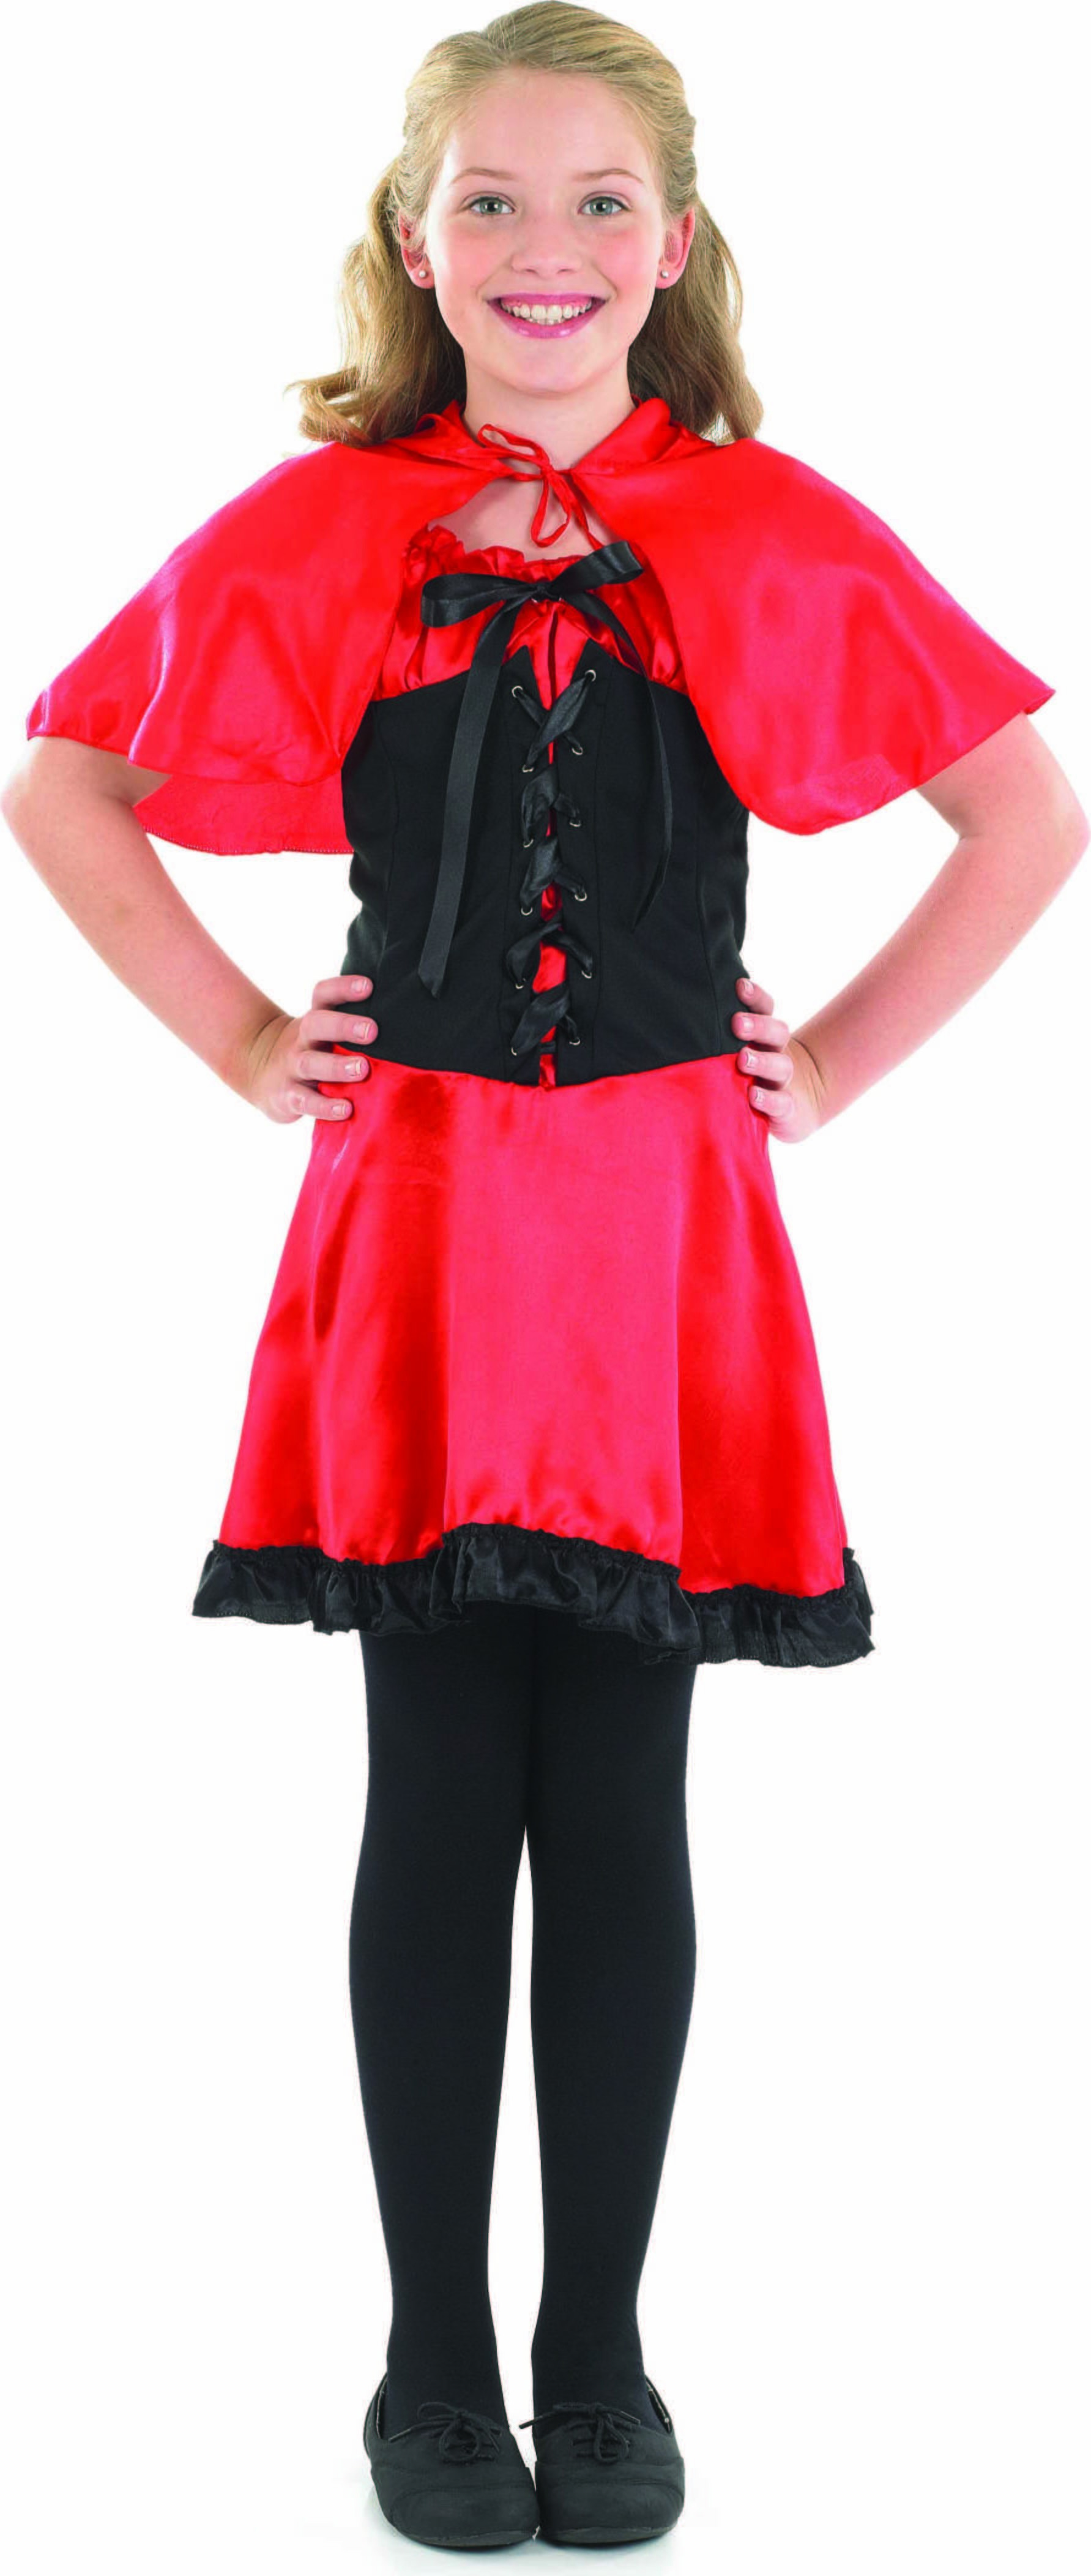 Red Riding Girl Fancy Dress Costume